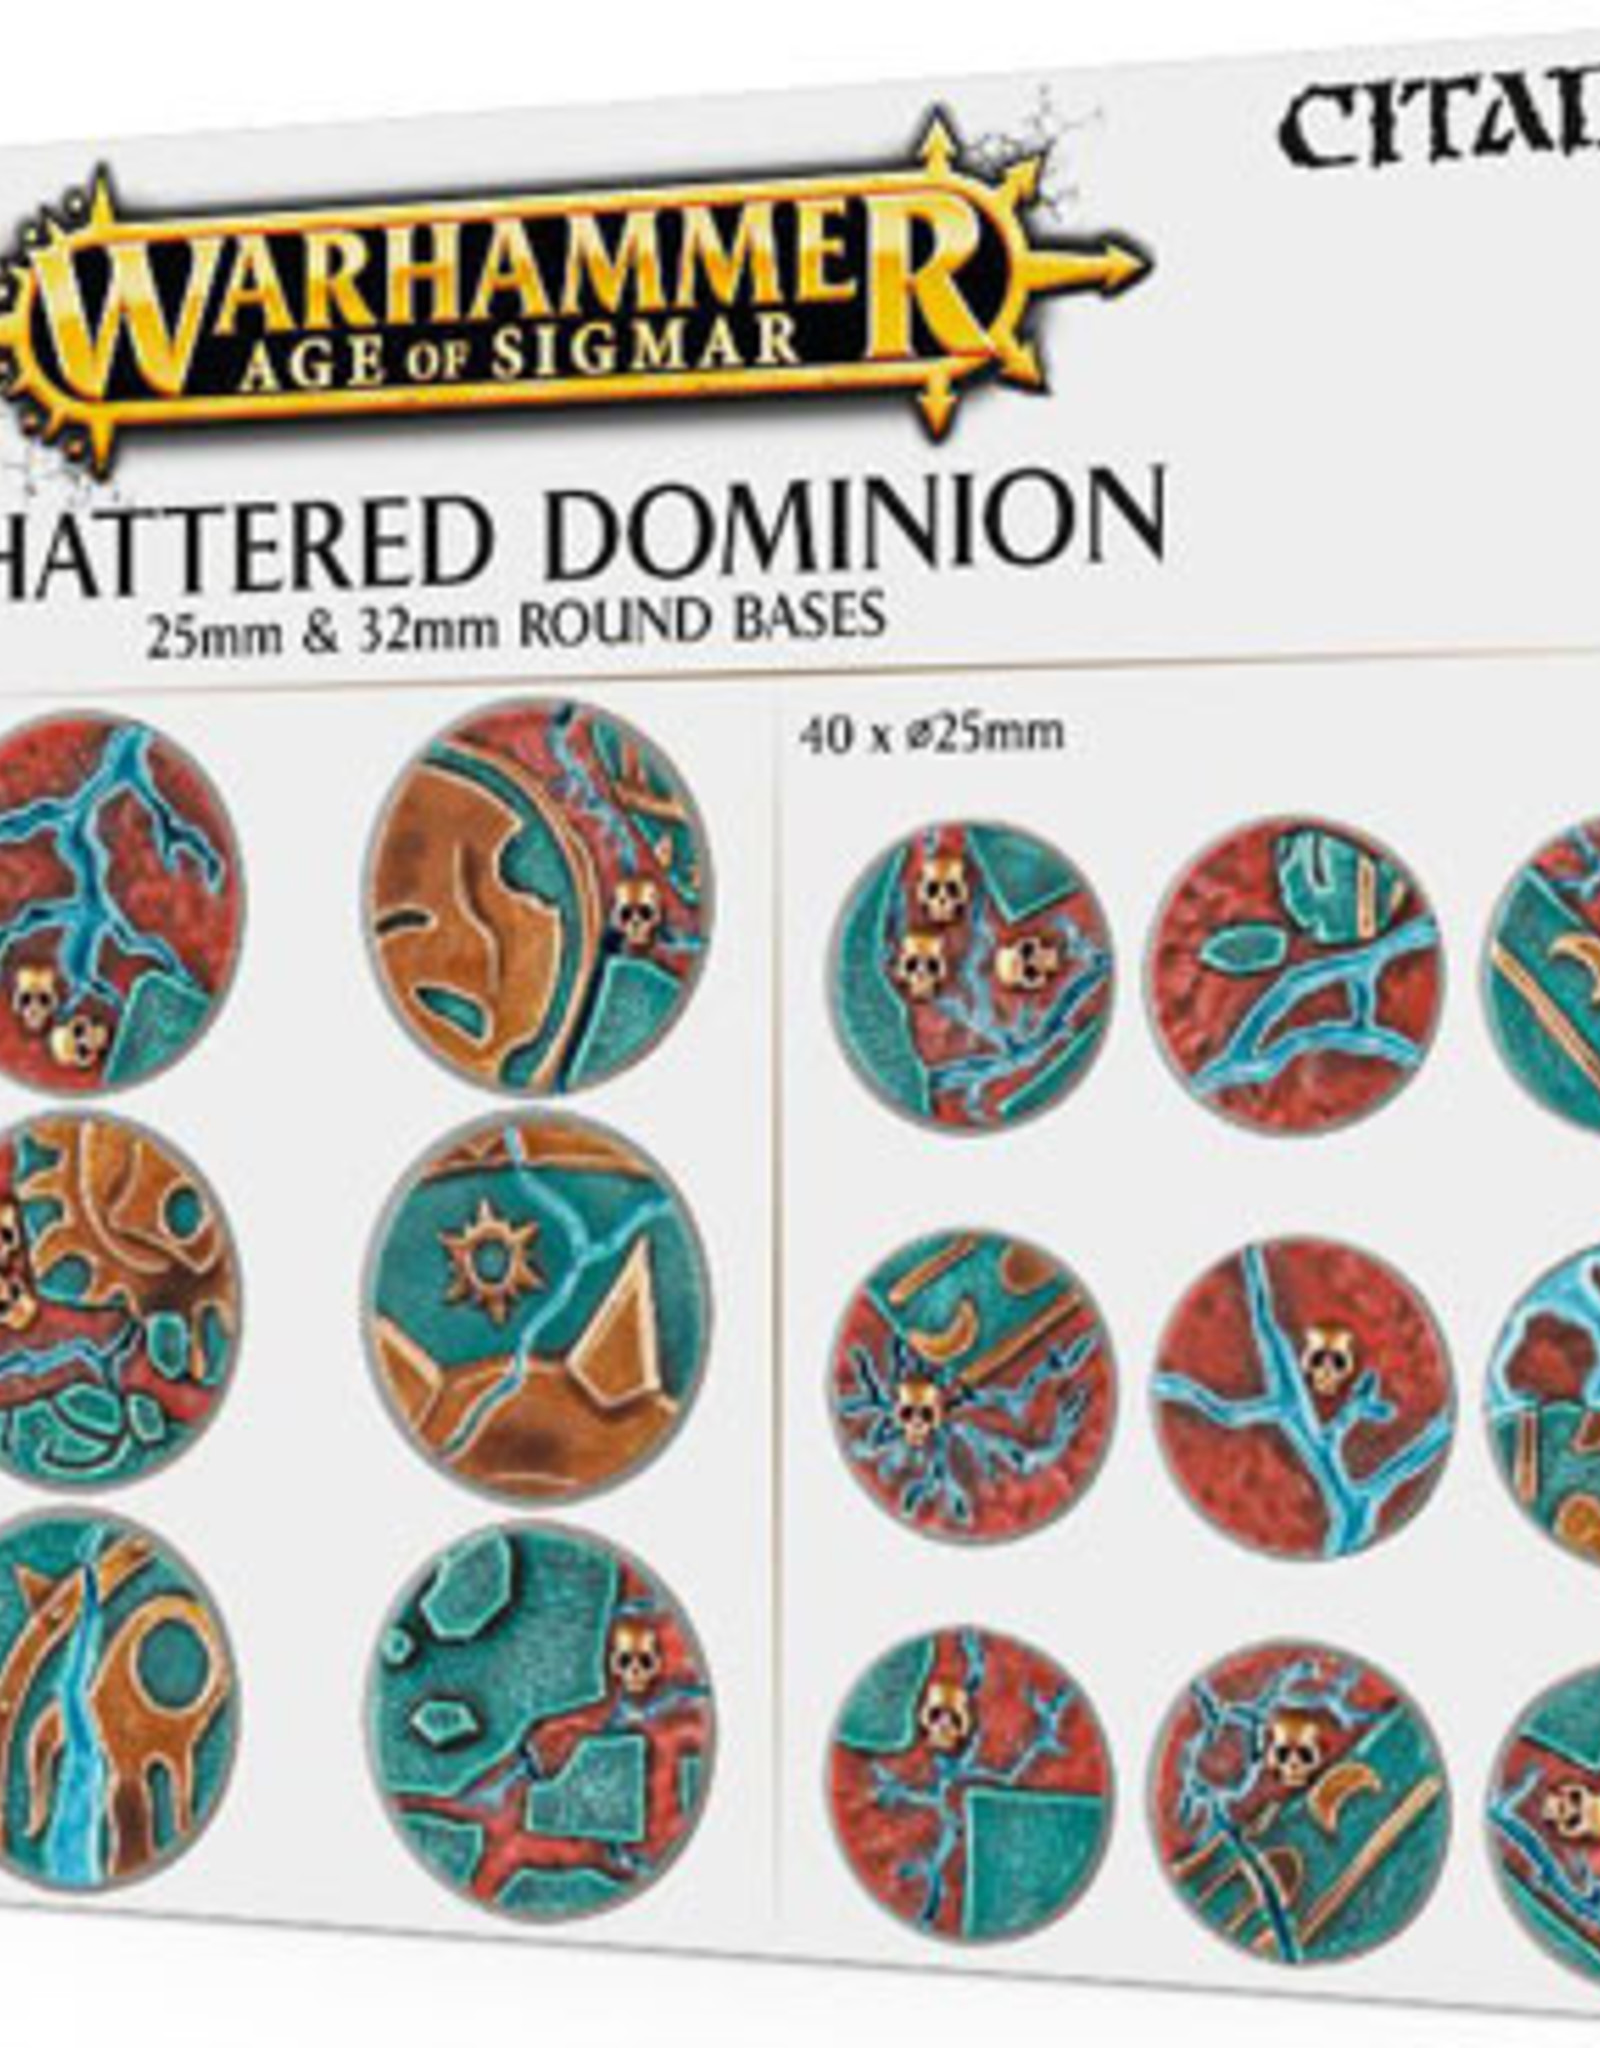 Games Workshop Warhammer Age of Sigmar: Shattered Dominion 25mm & 32mm Round Bases